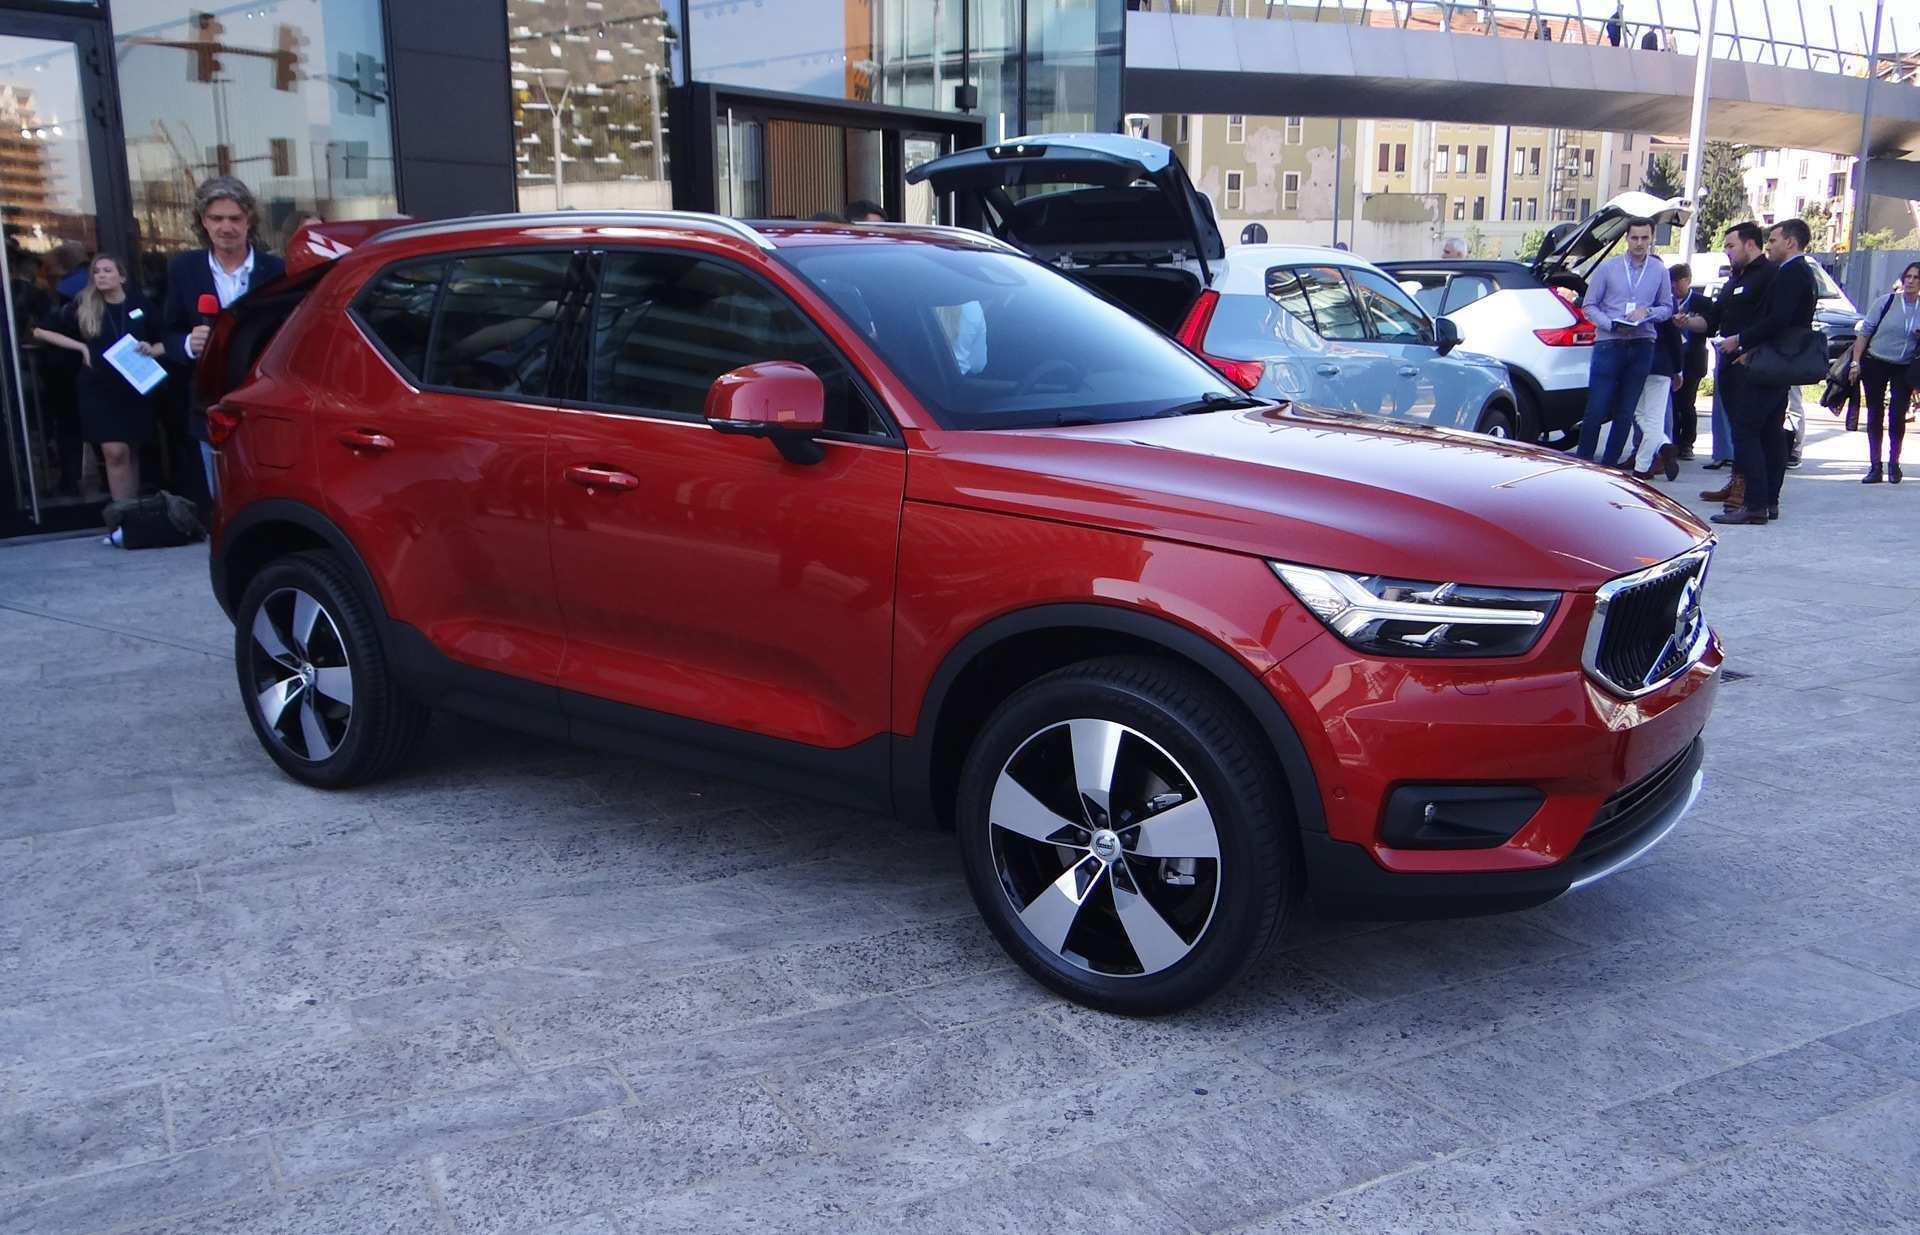 68 Best Review New Volvo Electrification 2019 Review And Release Date Spesification with New Volvo Electrification 2019 Review And Release Date